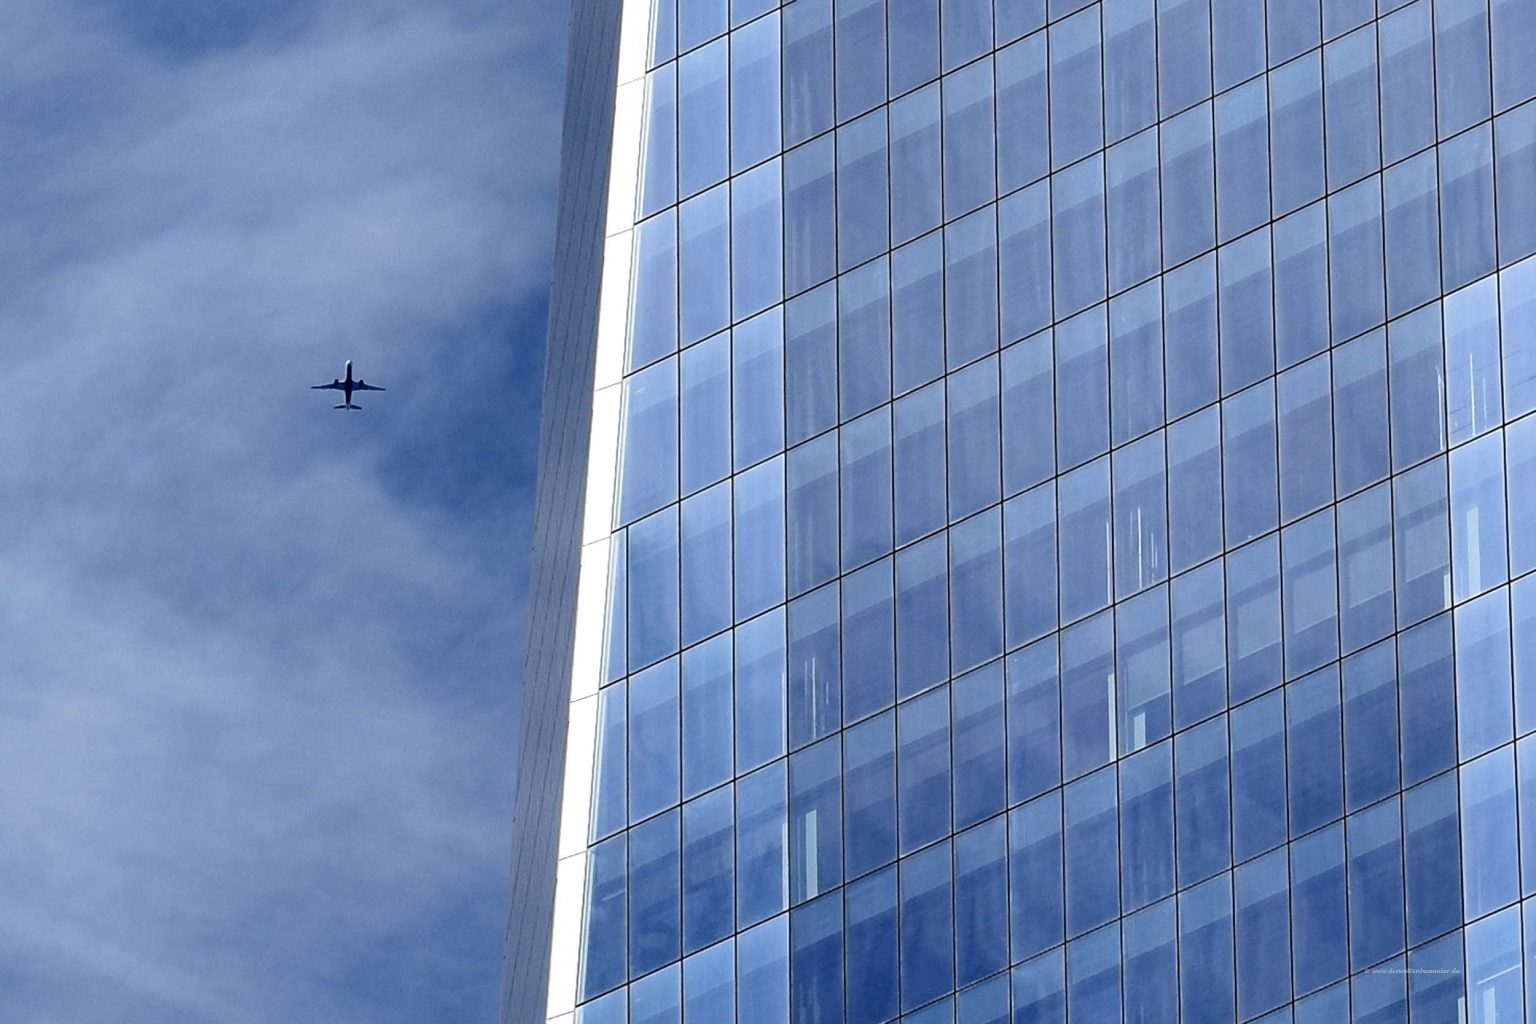 Flugzeug über dem One World Trade Center